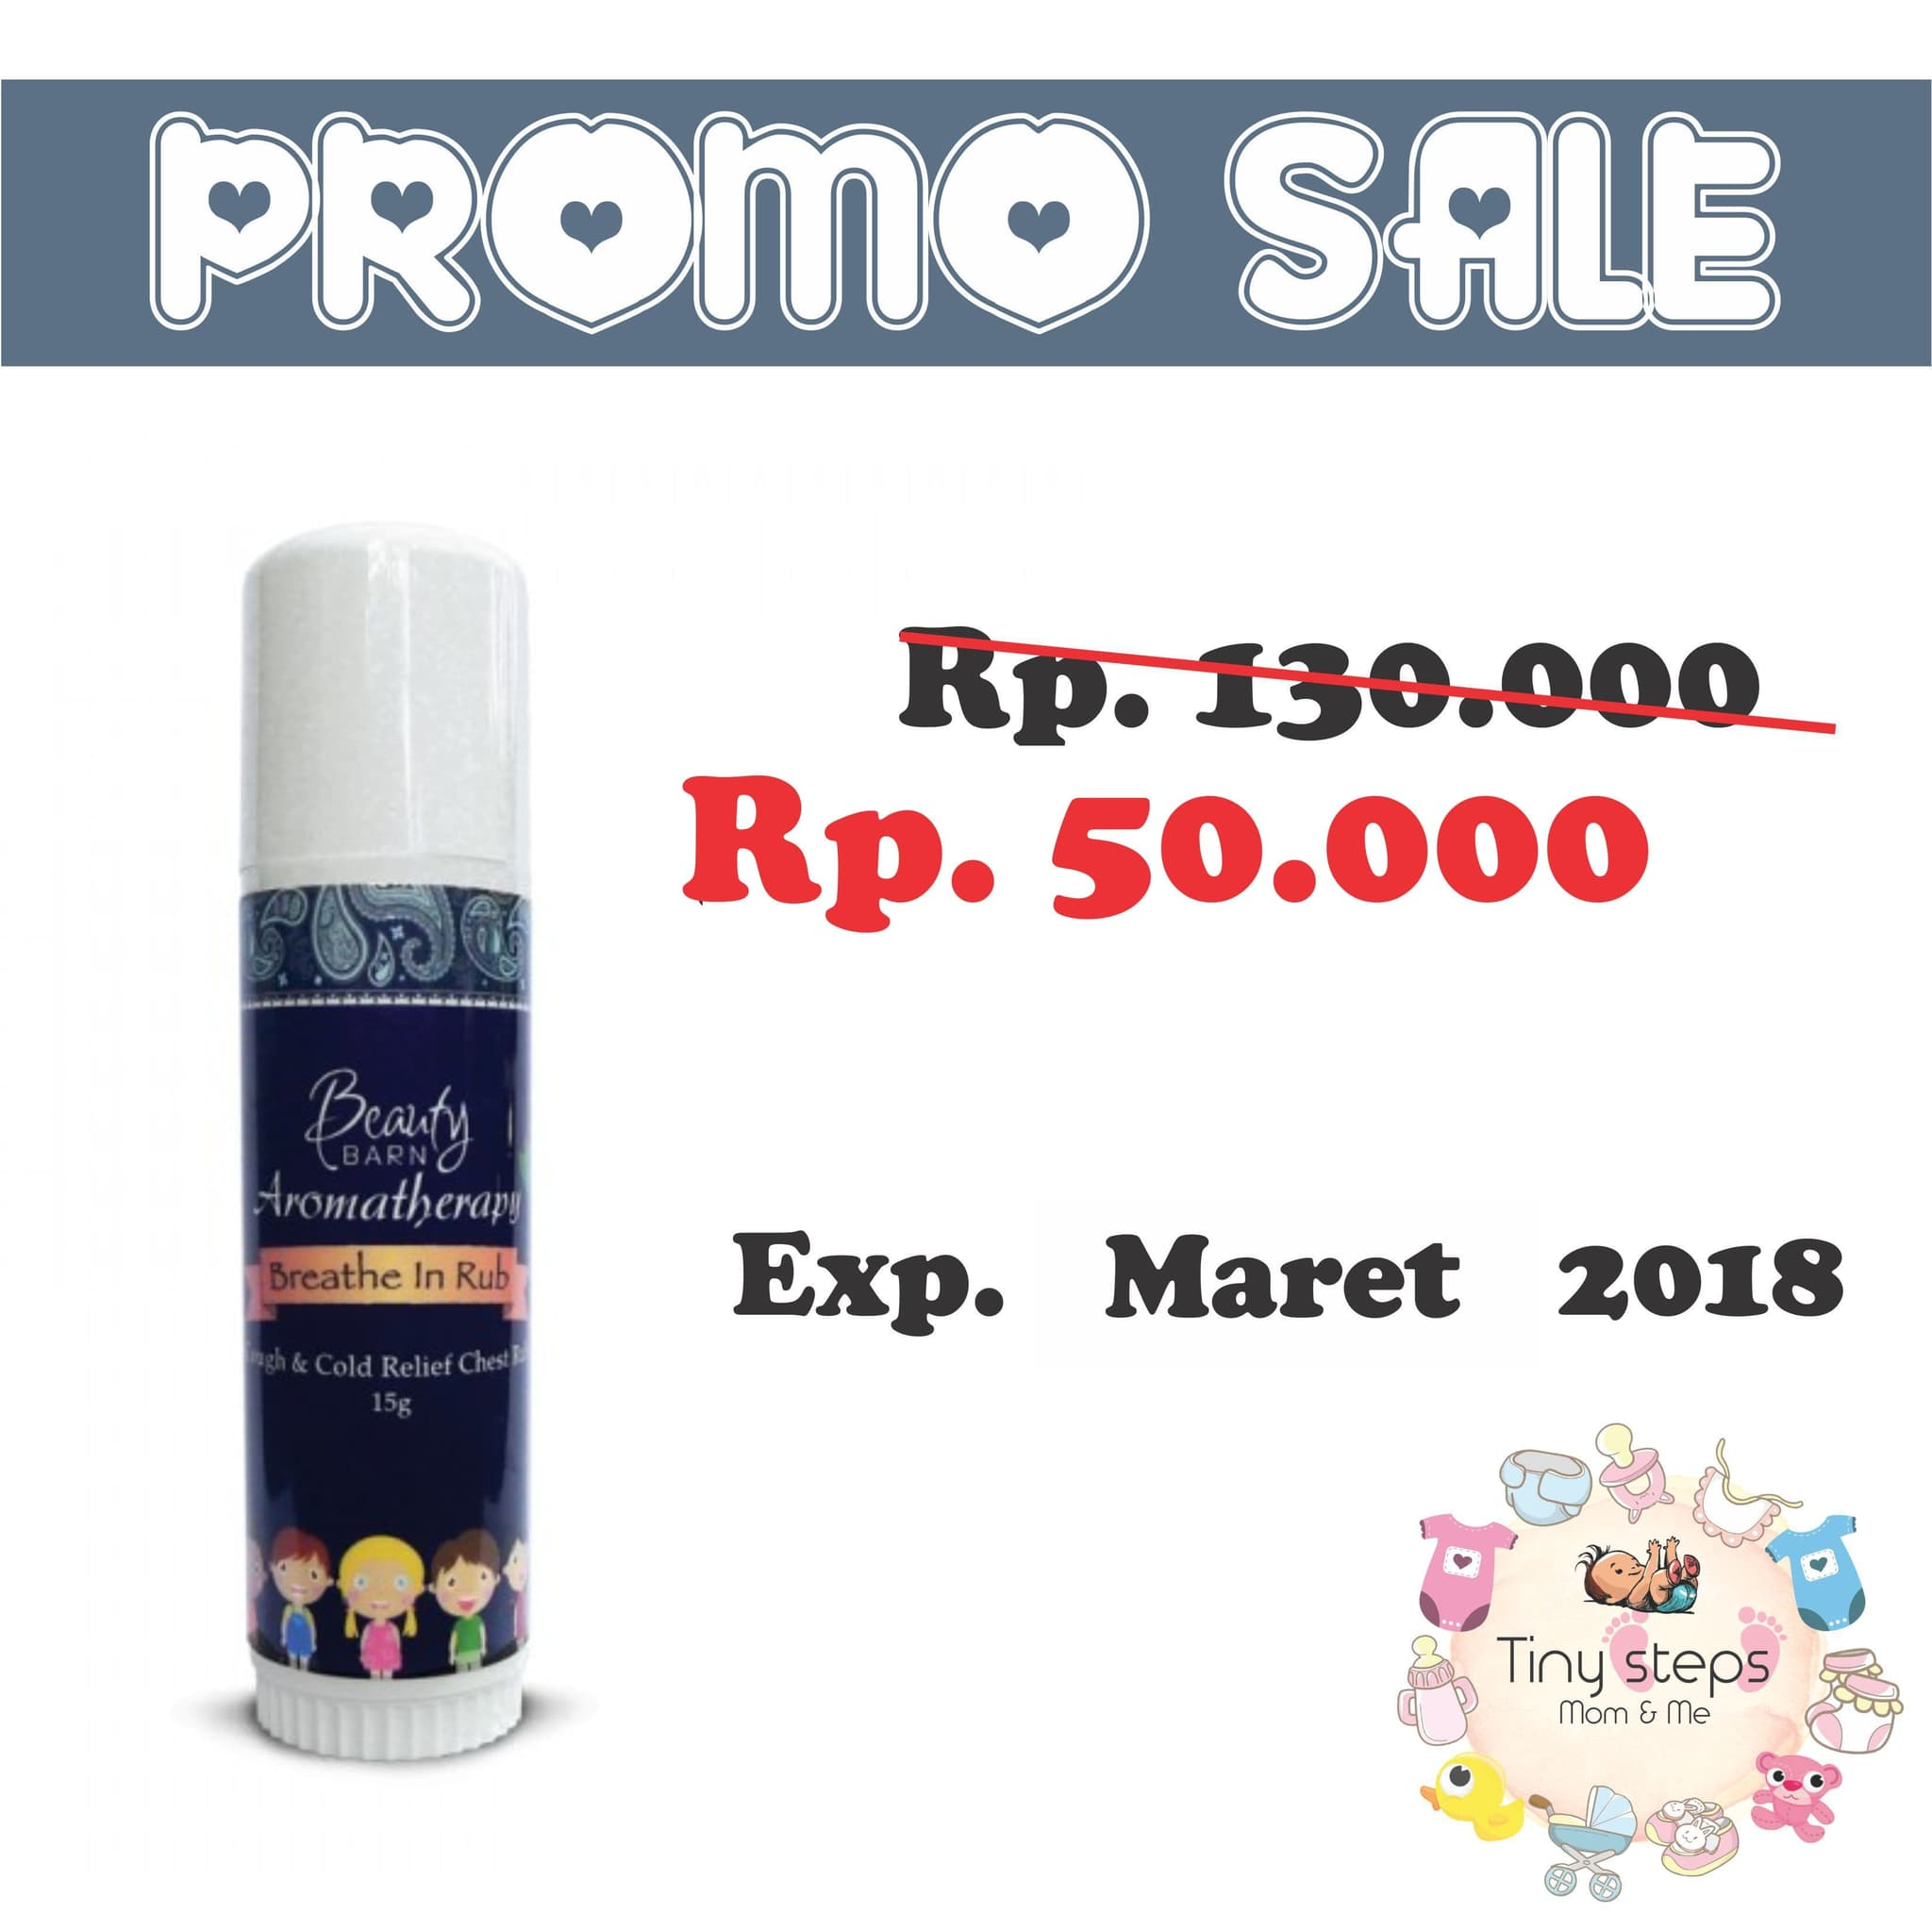 Beauty Barn Aromatheraphy Breathe In Rub Daftar Harga Terlengkap Aromatherapy Feeve 30ml Jual Sale Cough Cold Relief Chest Tiny Steps